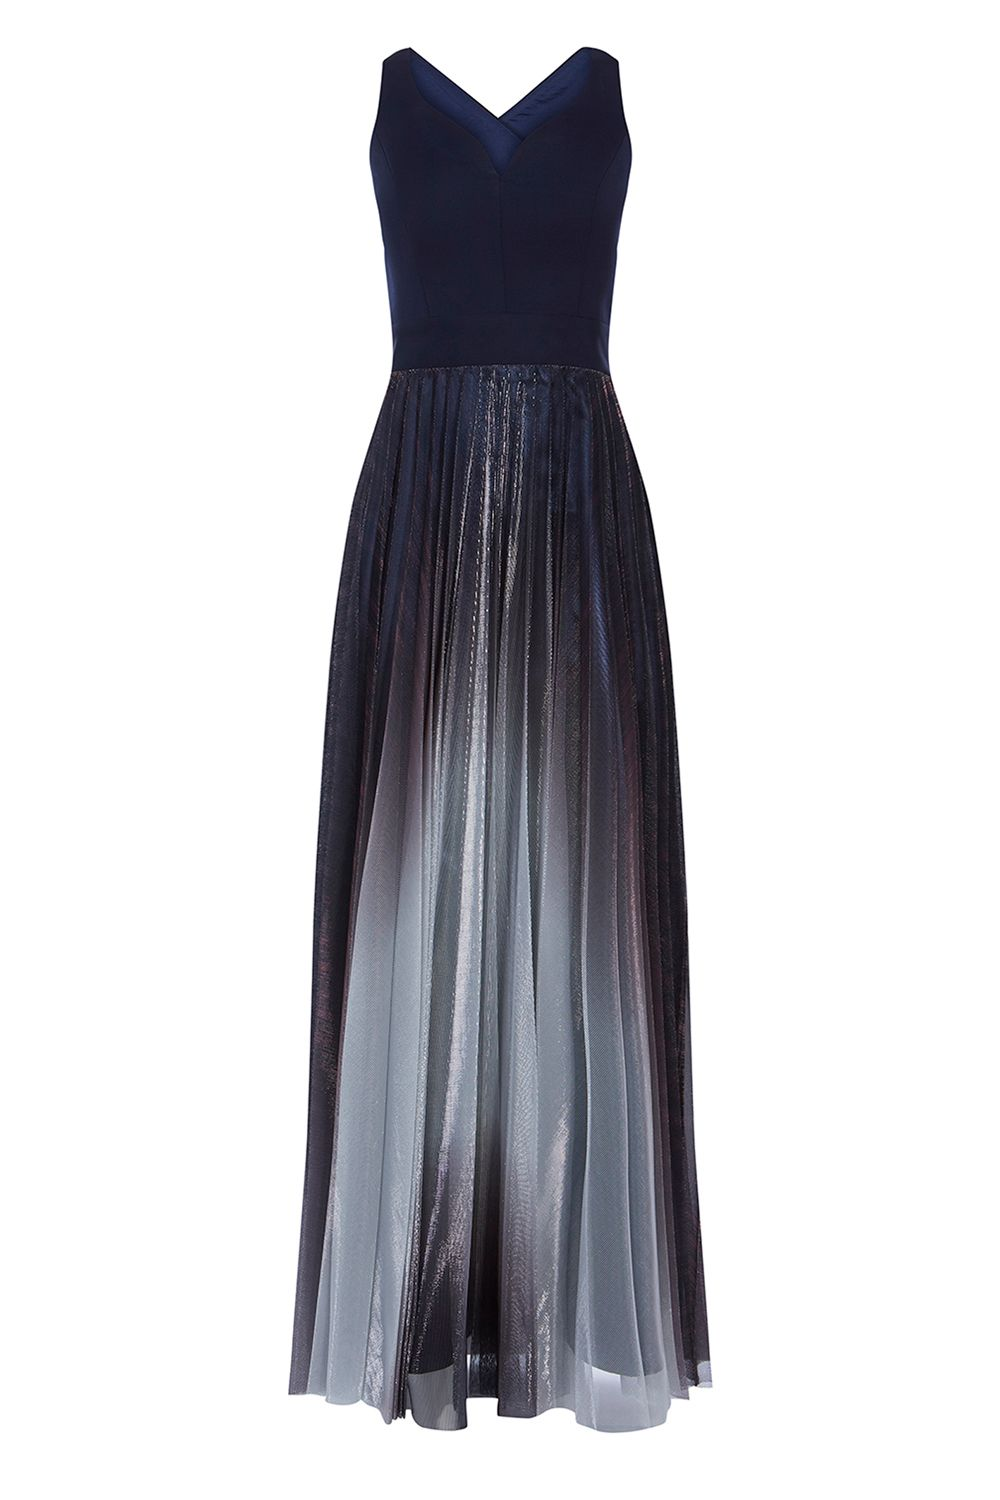 Coast Roma Metallic Pleated Dress, Blue